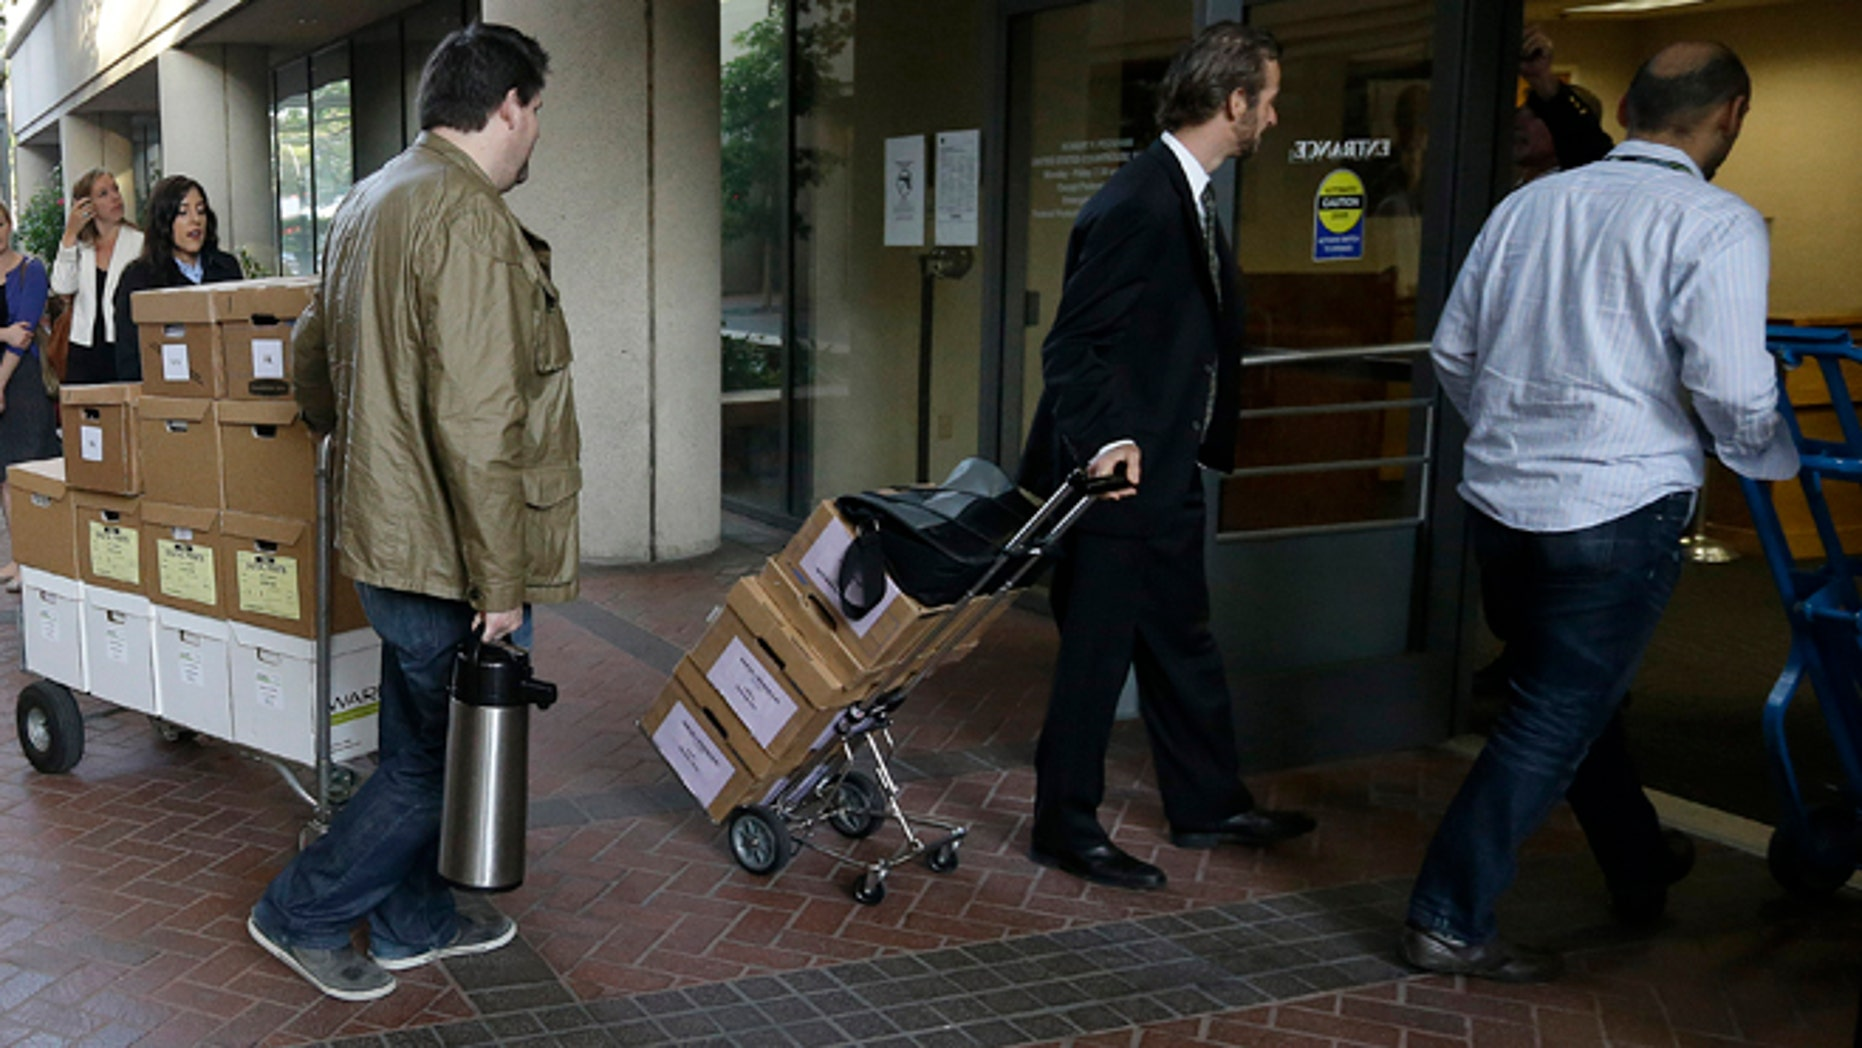 April 29, 2014: Boxes containing documents related to the Apple Inc. v. Samsung case are taken into a federal courthouse in San Jose, Calif.